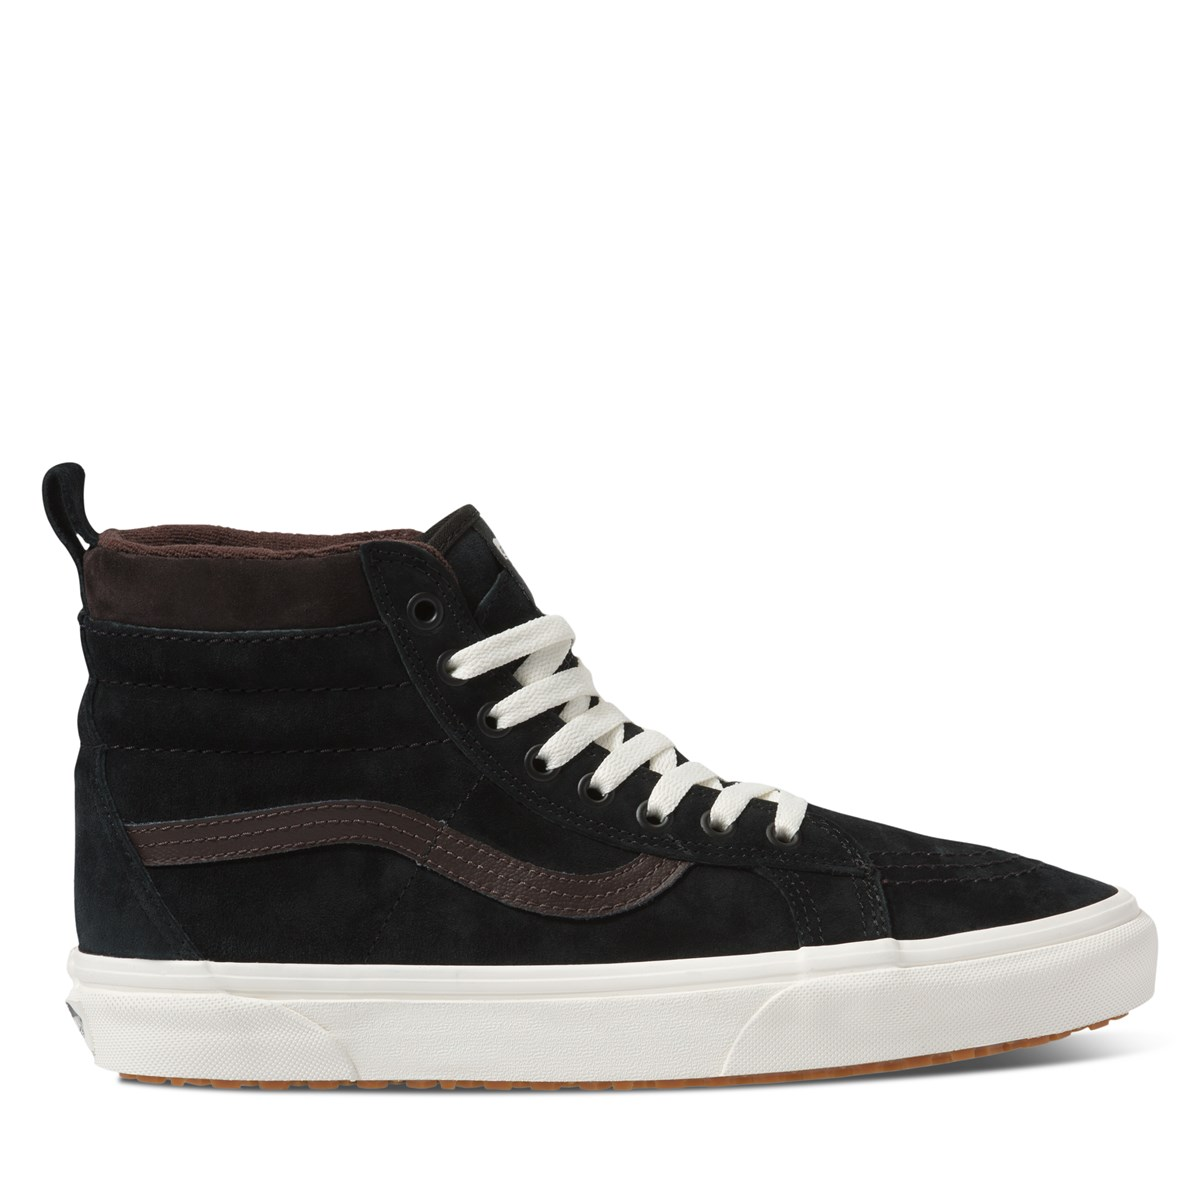 Men's SK8 Hi MTE Sneakers in Brown